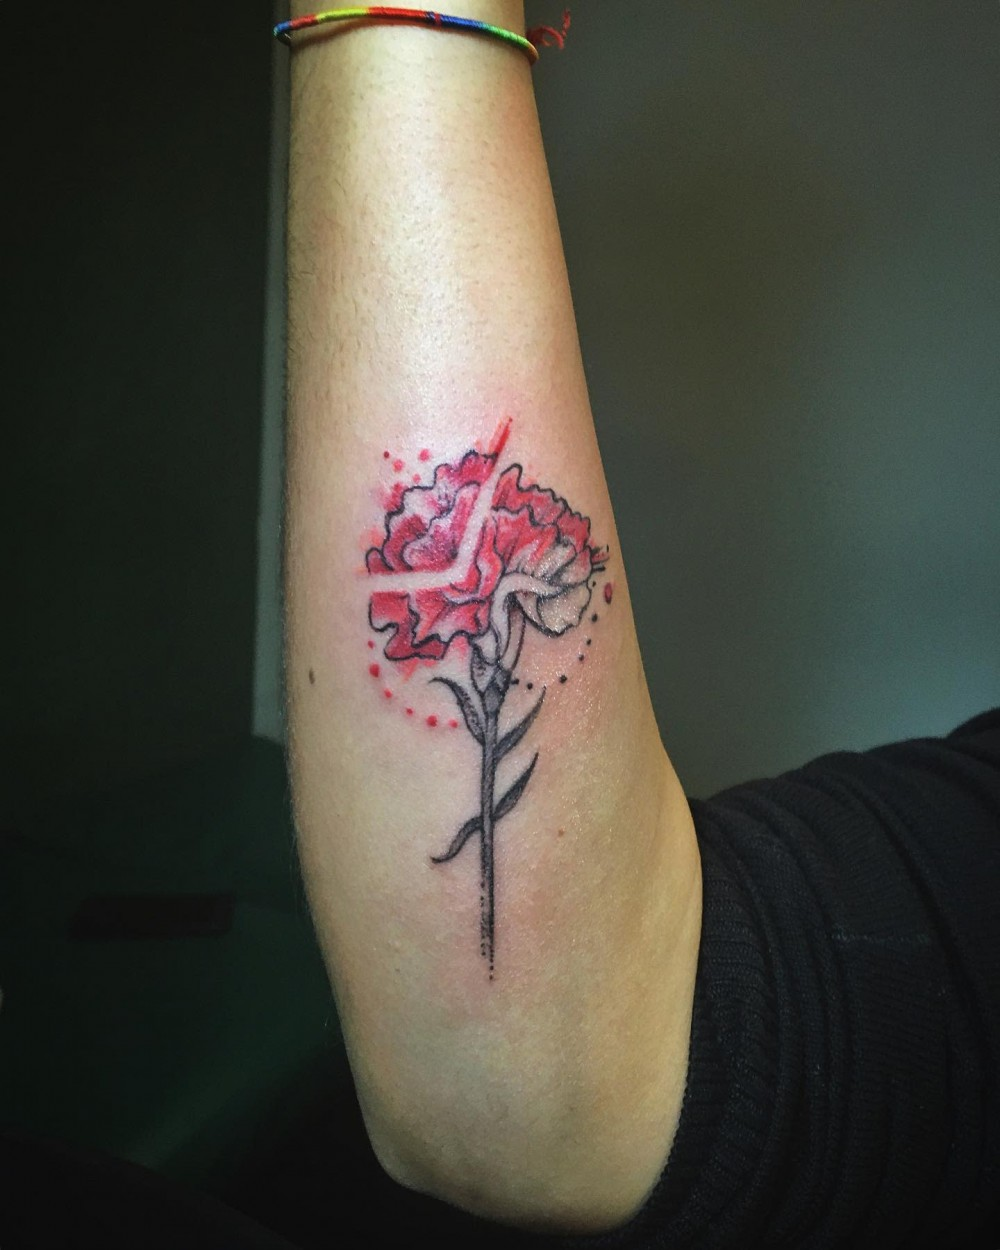 """Simple Small Carnation Floral Designs: 27+ January Birth Month Flower Tattoo Designs birth flower tattoo designs birth month flower birth flower tattoos january tattoos sign tattoo according to date of birth birthday month tattoos carnation tattoo meaning carnation tattoo with name carnation tattoo black and grey carnation tattoo simple carnation tattoo small carnation tattoo minimalist"""